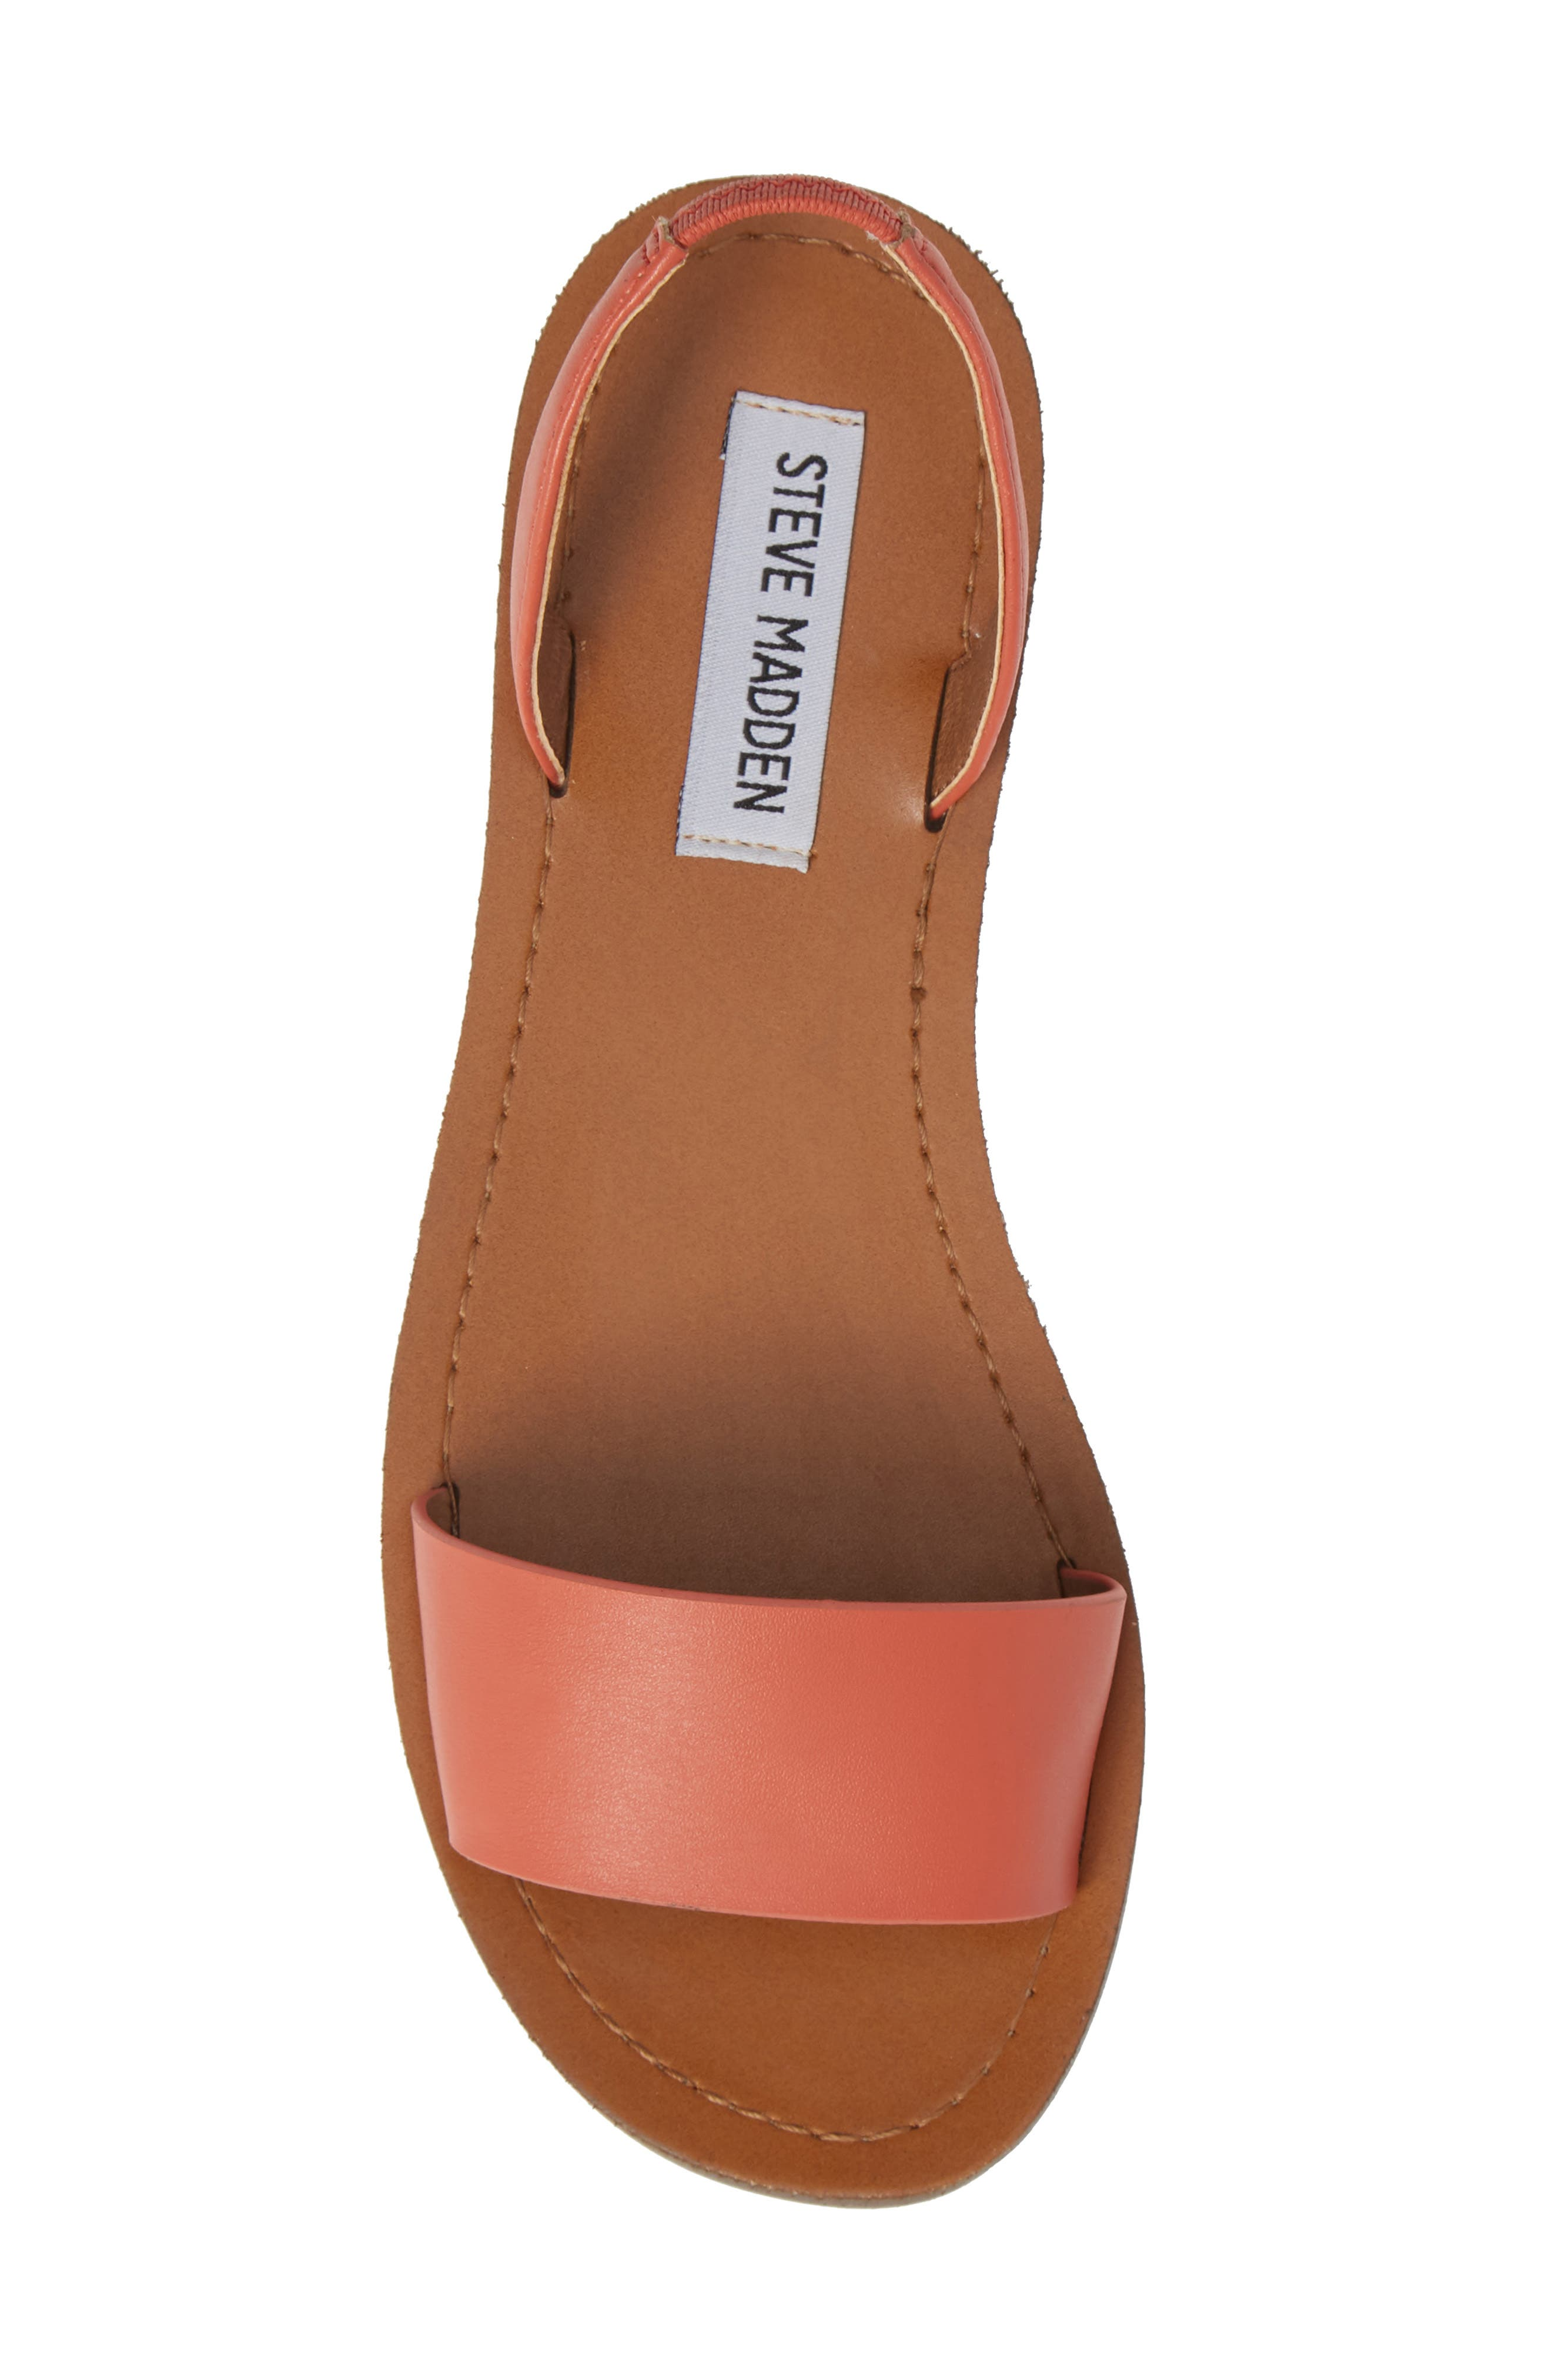 Alina Sandal,                             Alternate thumbnail 5, color,                             Coral